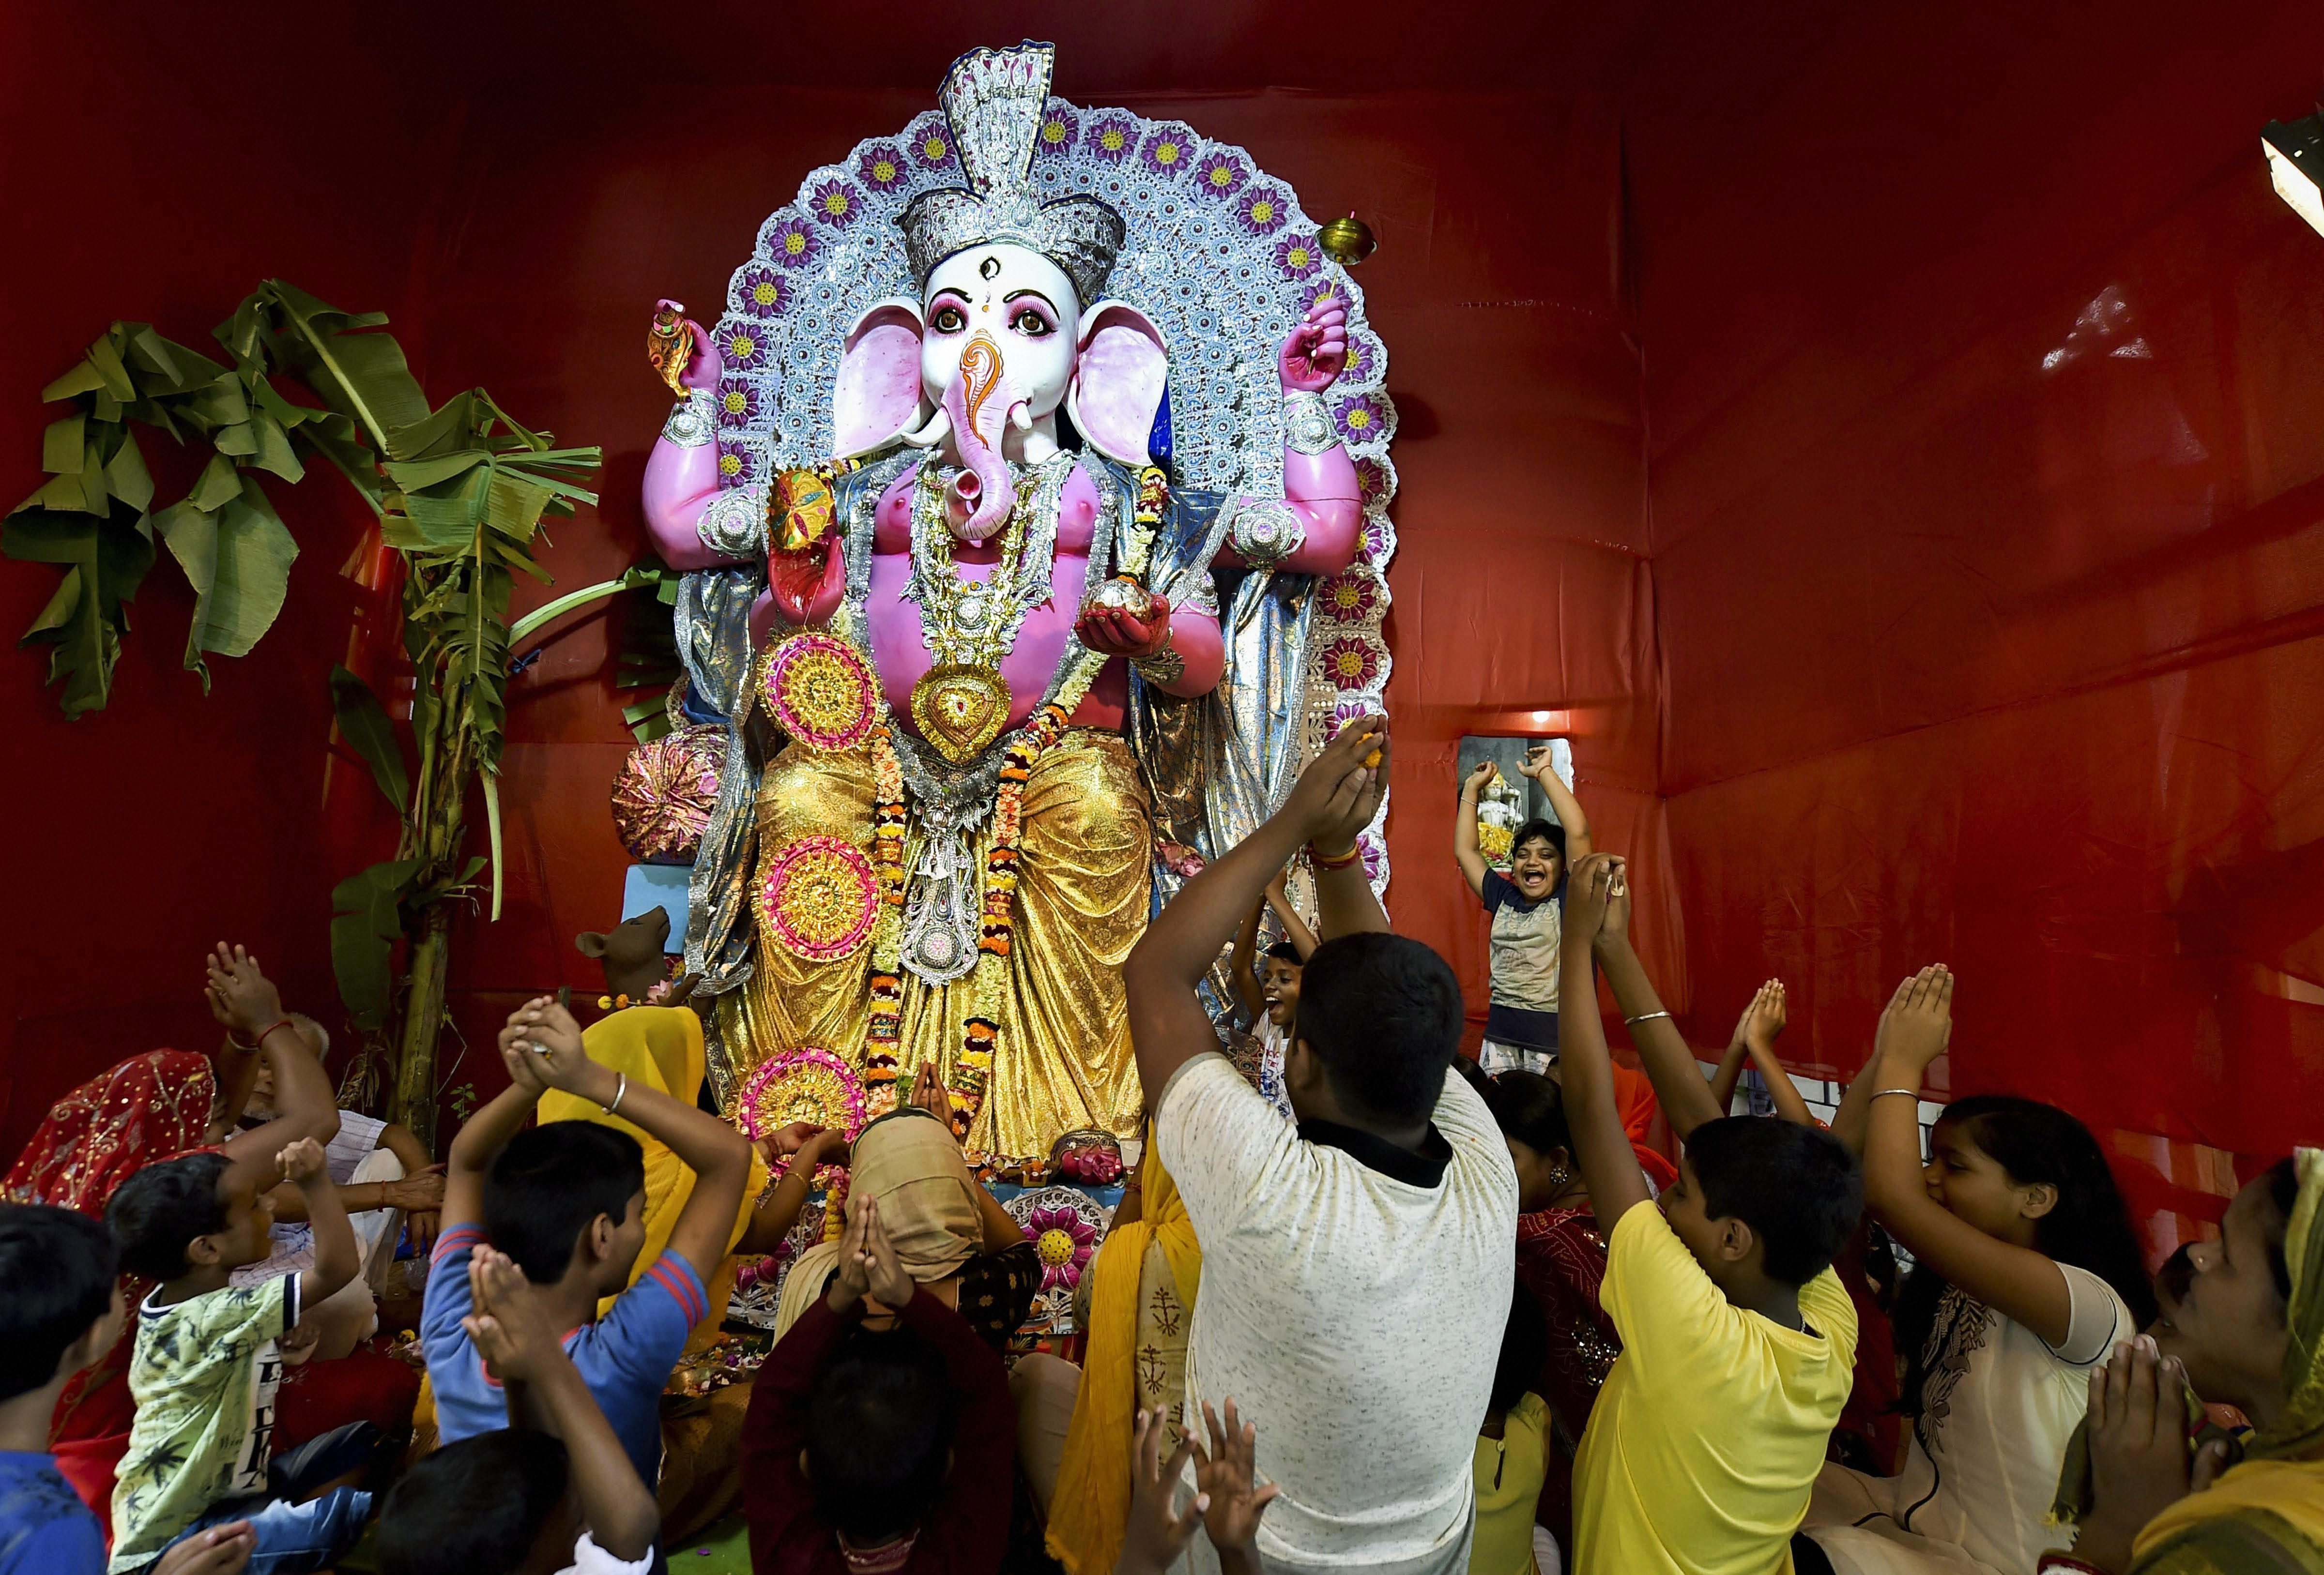 Devotees offer prayers to Lord Ganesh at a community puja pandal on the occasion of Ganesh Chaturthi in Kolkata - PTI